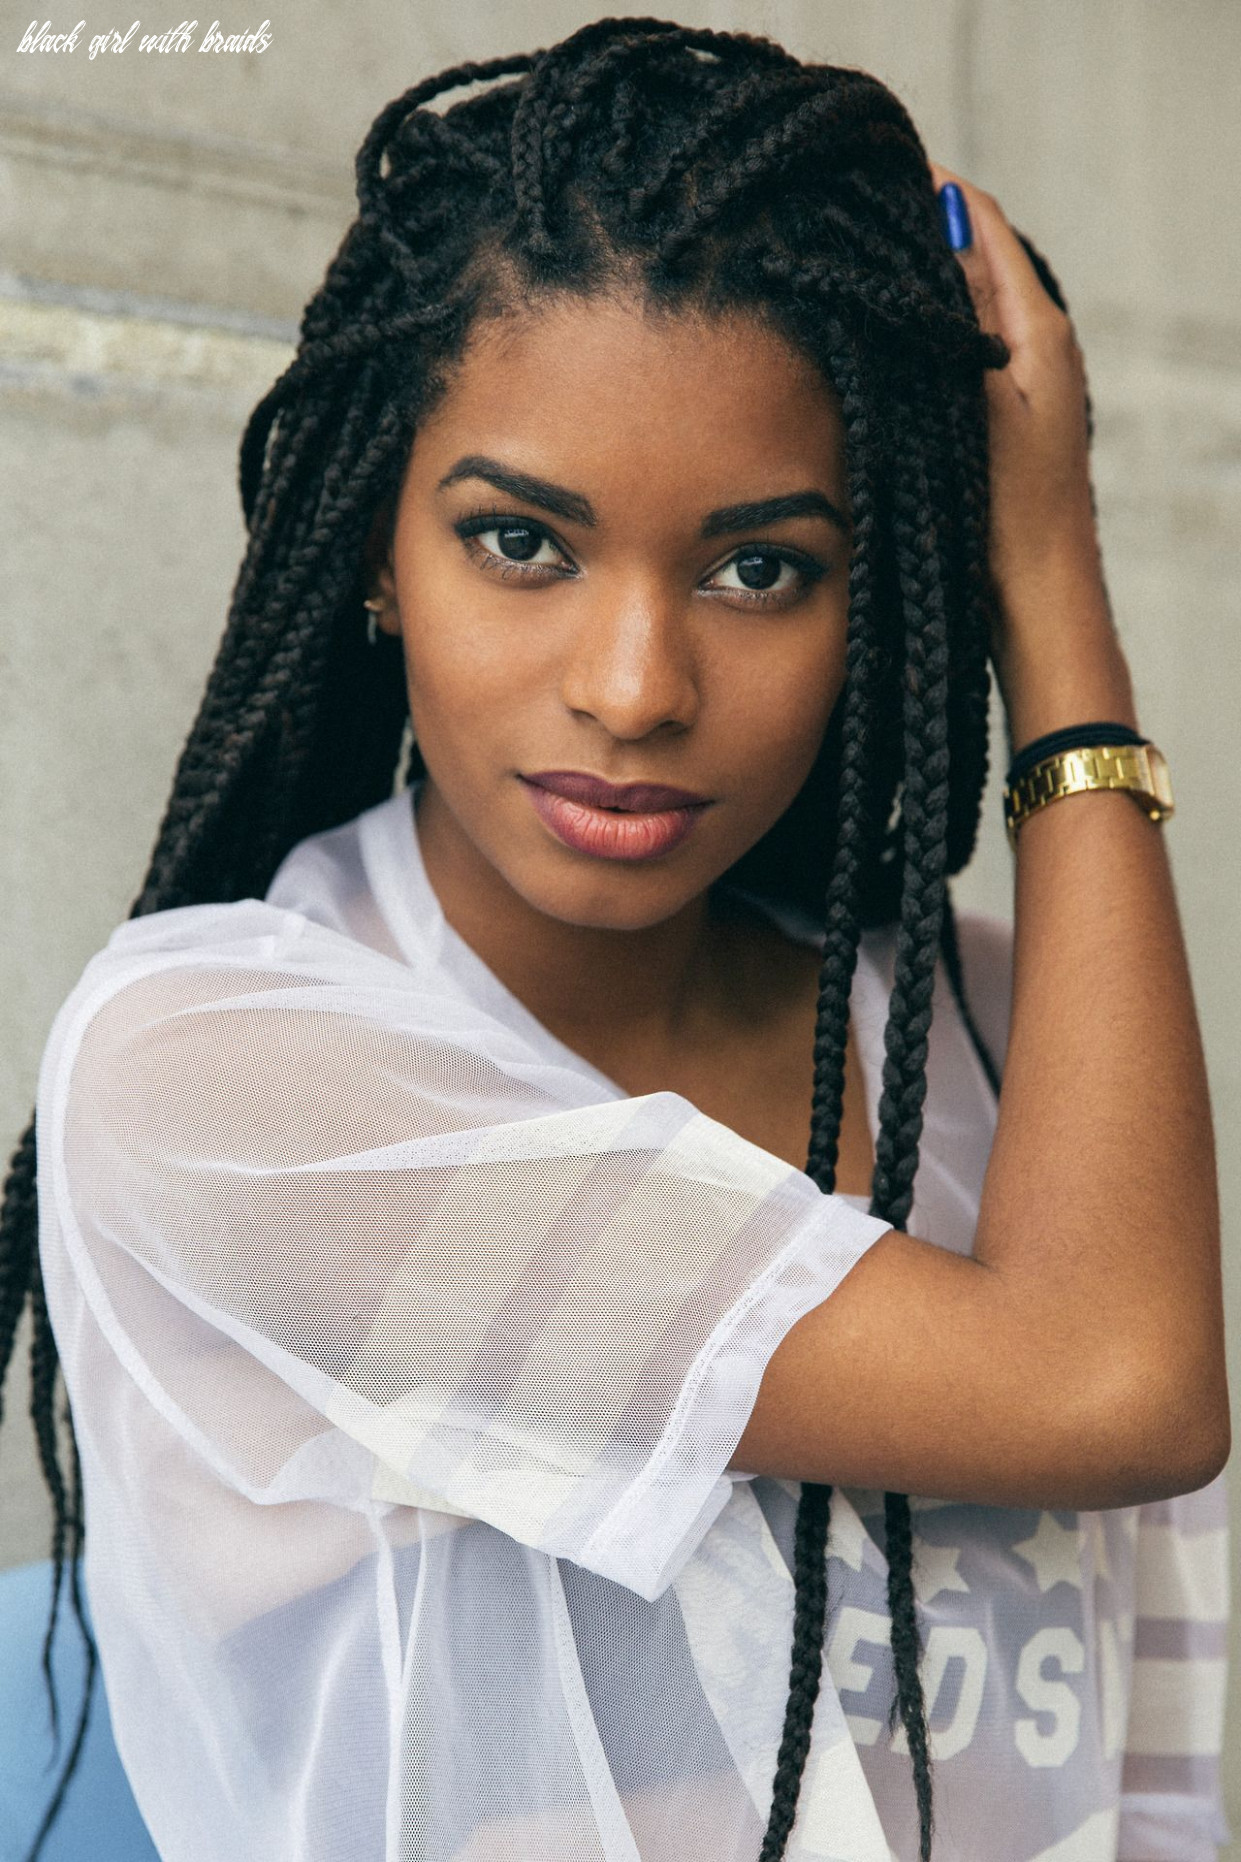 Pin su african hairstyles black girl with braids